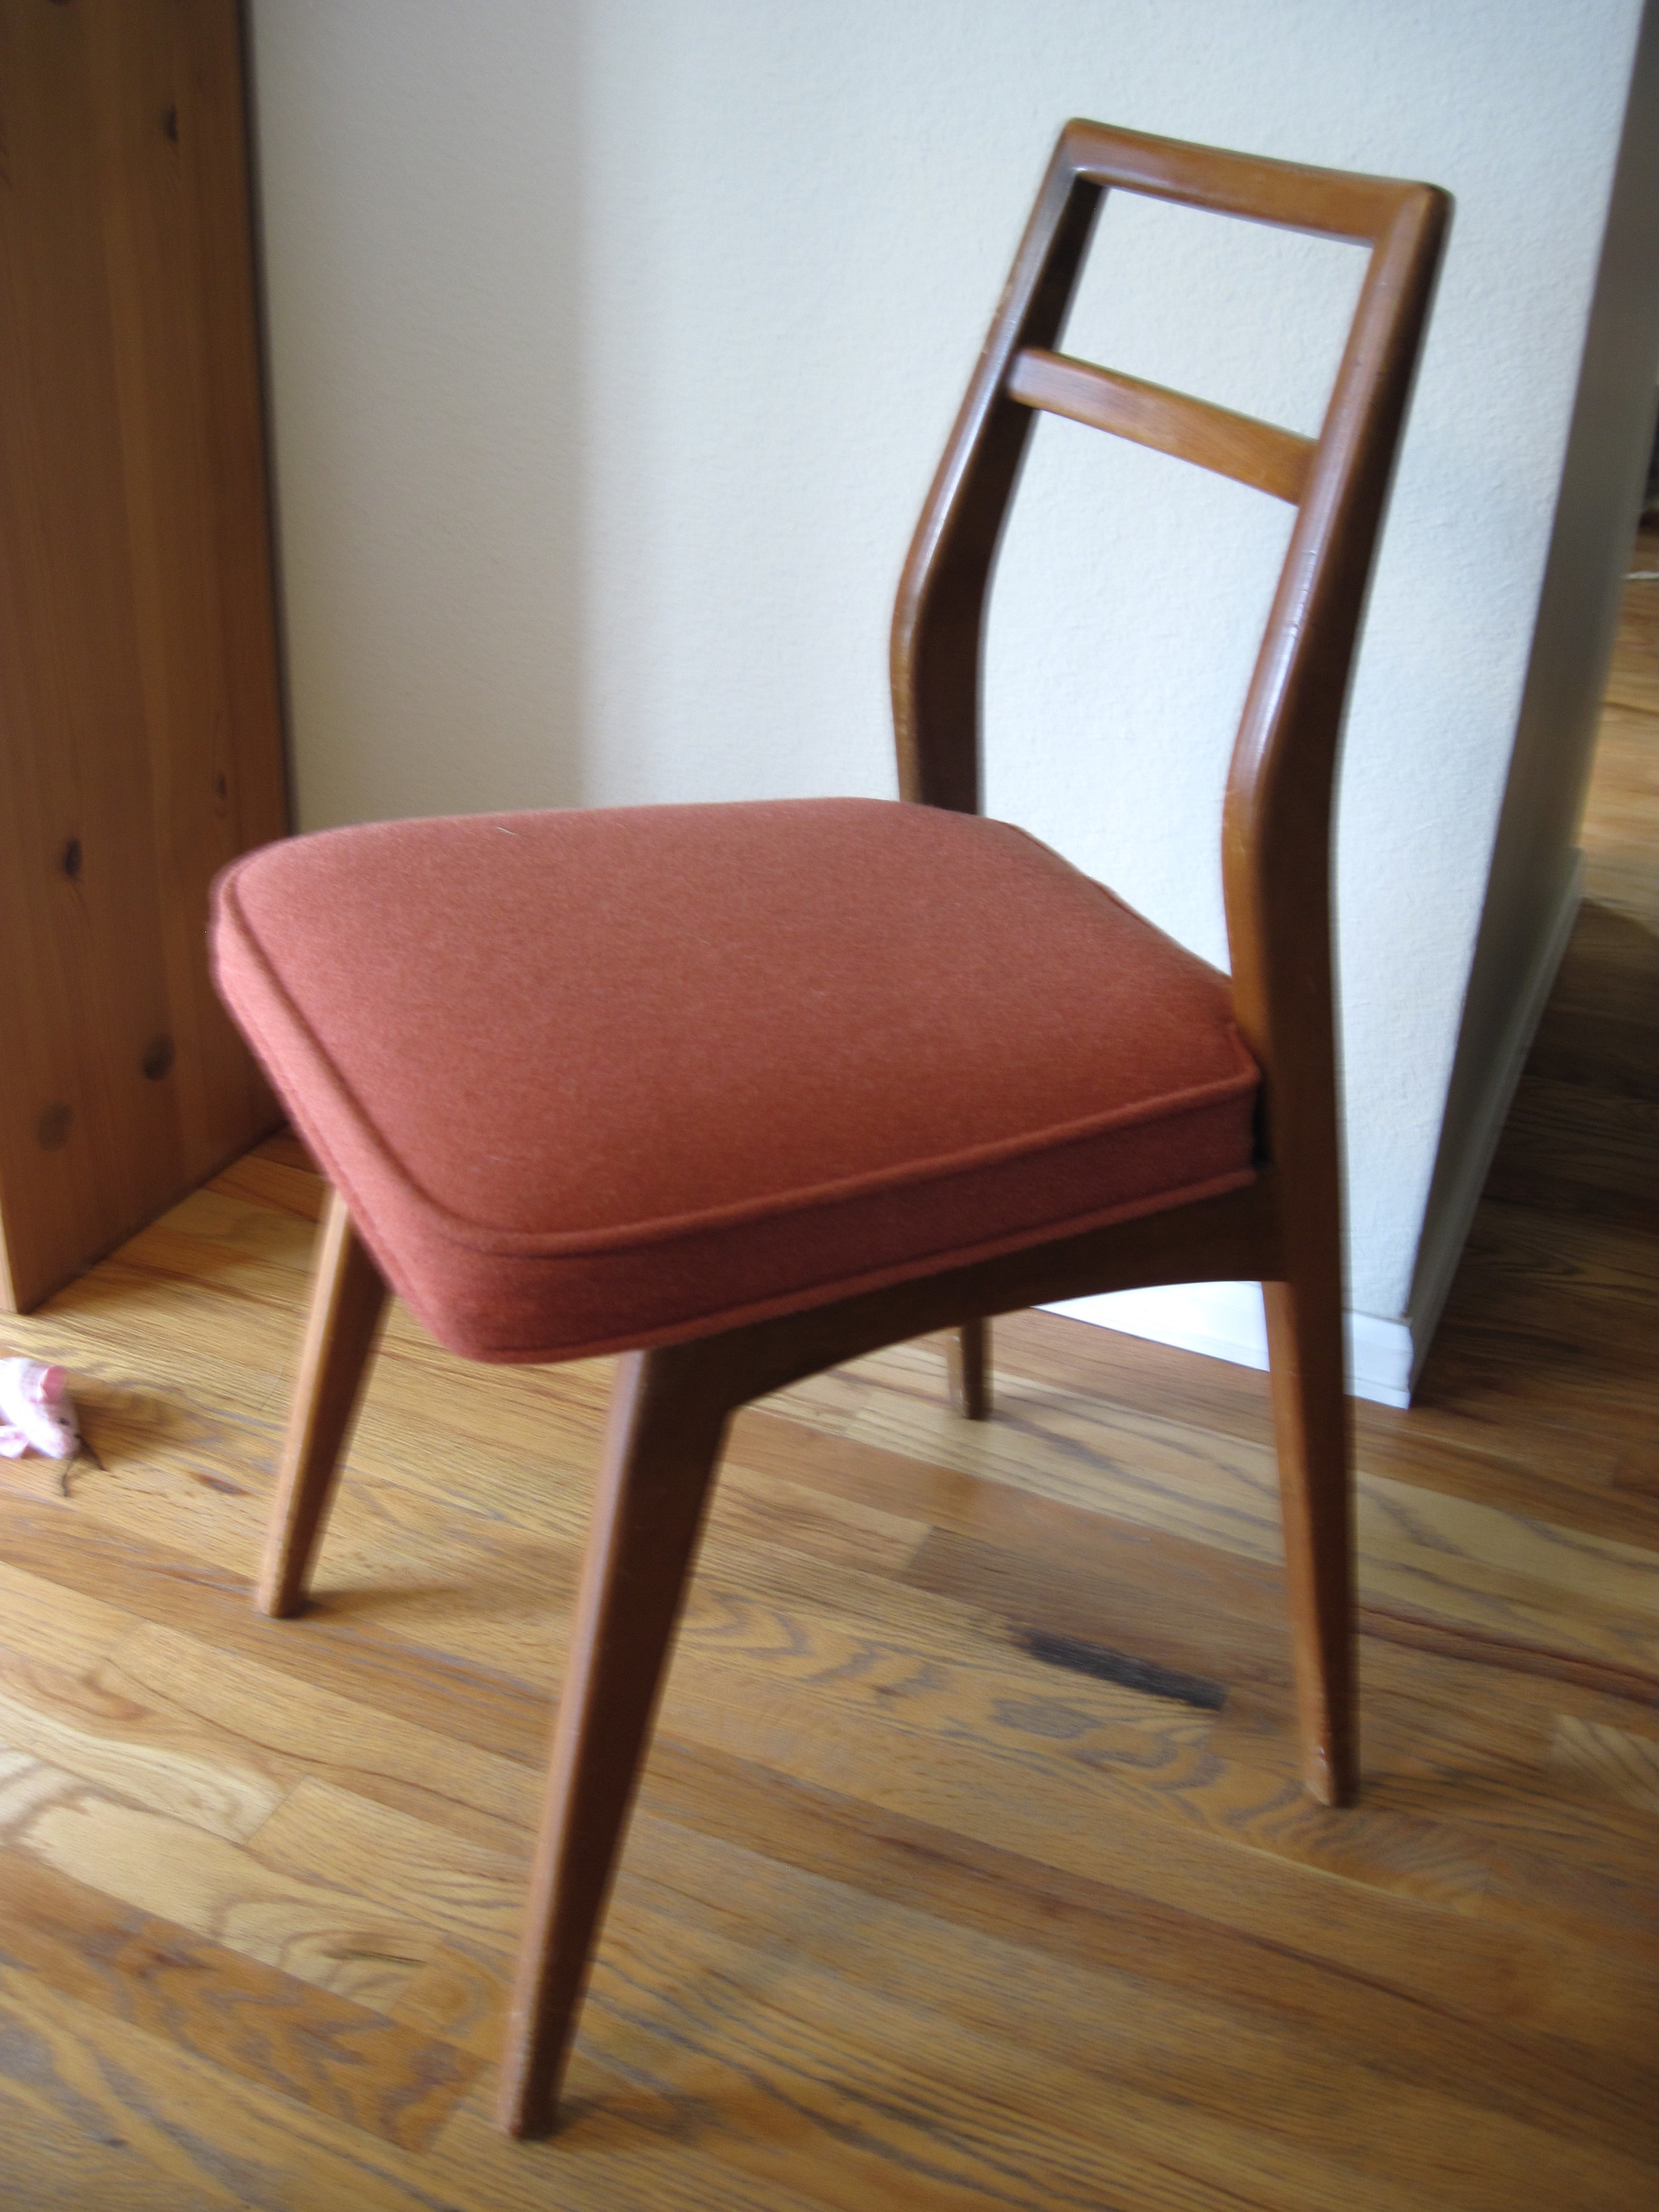 heirloom-chair-2